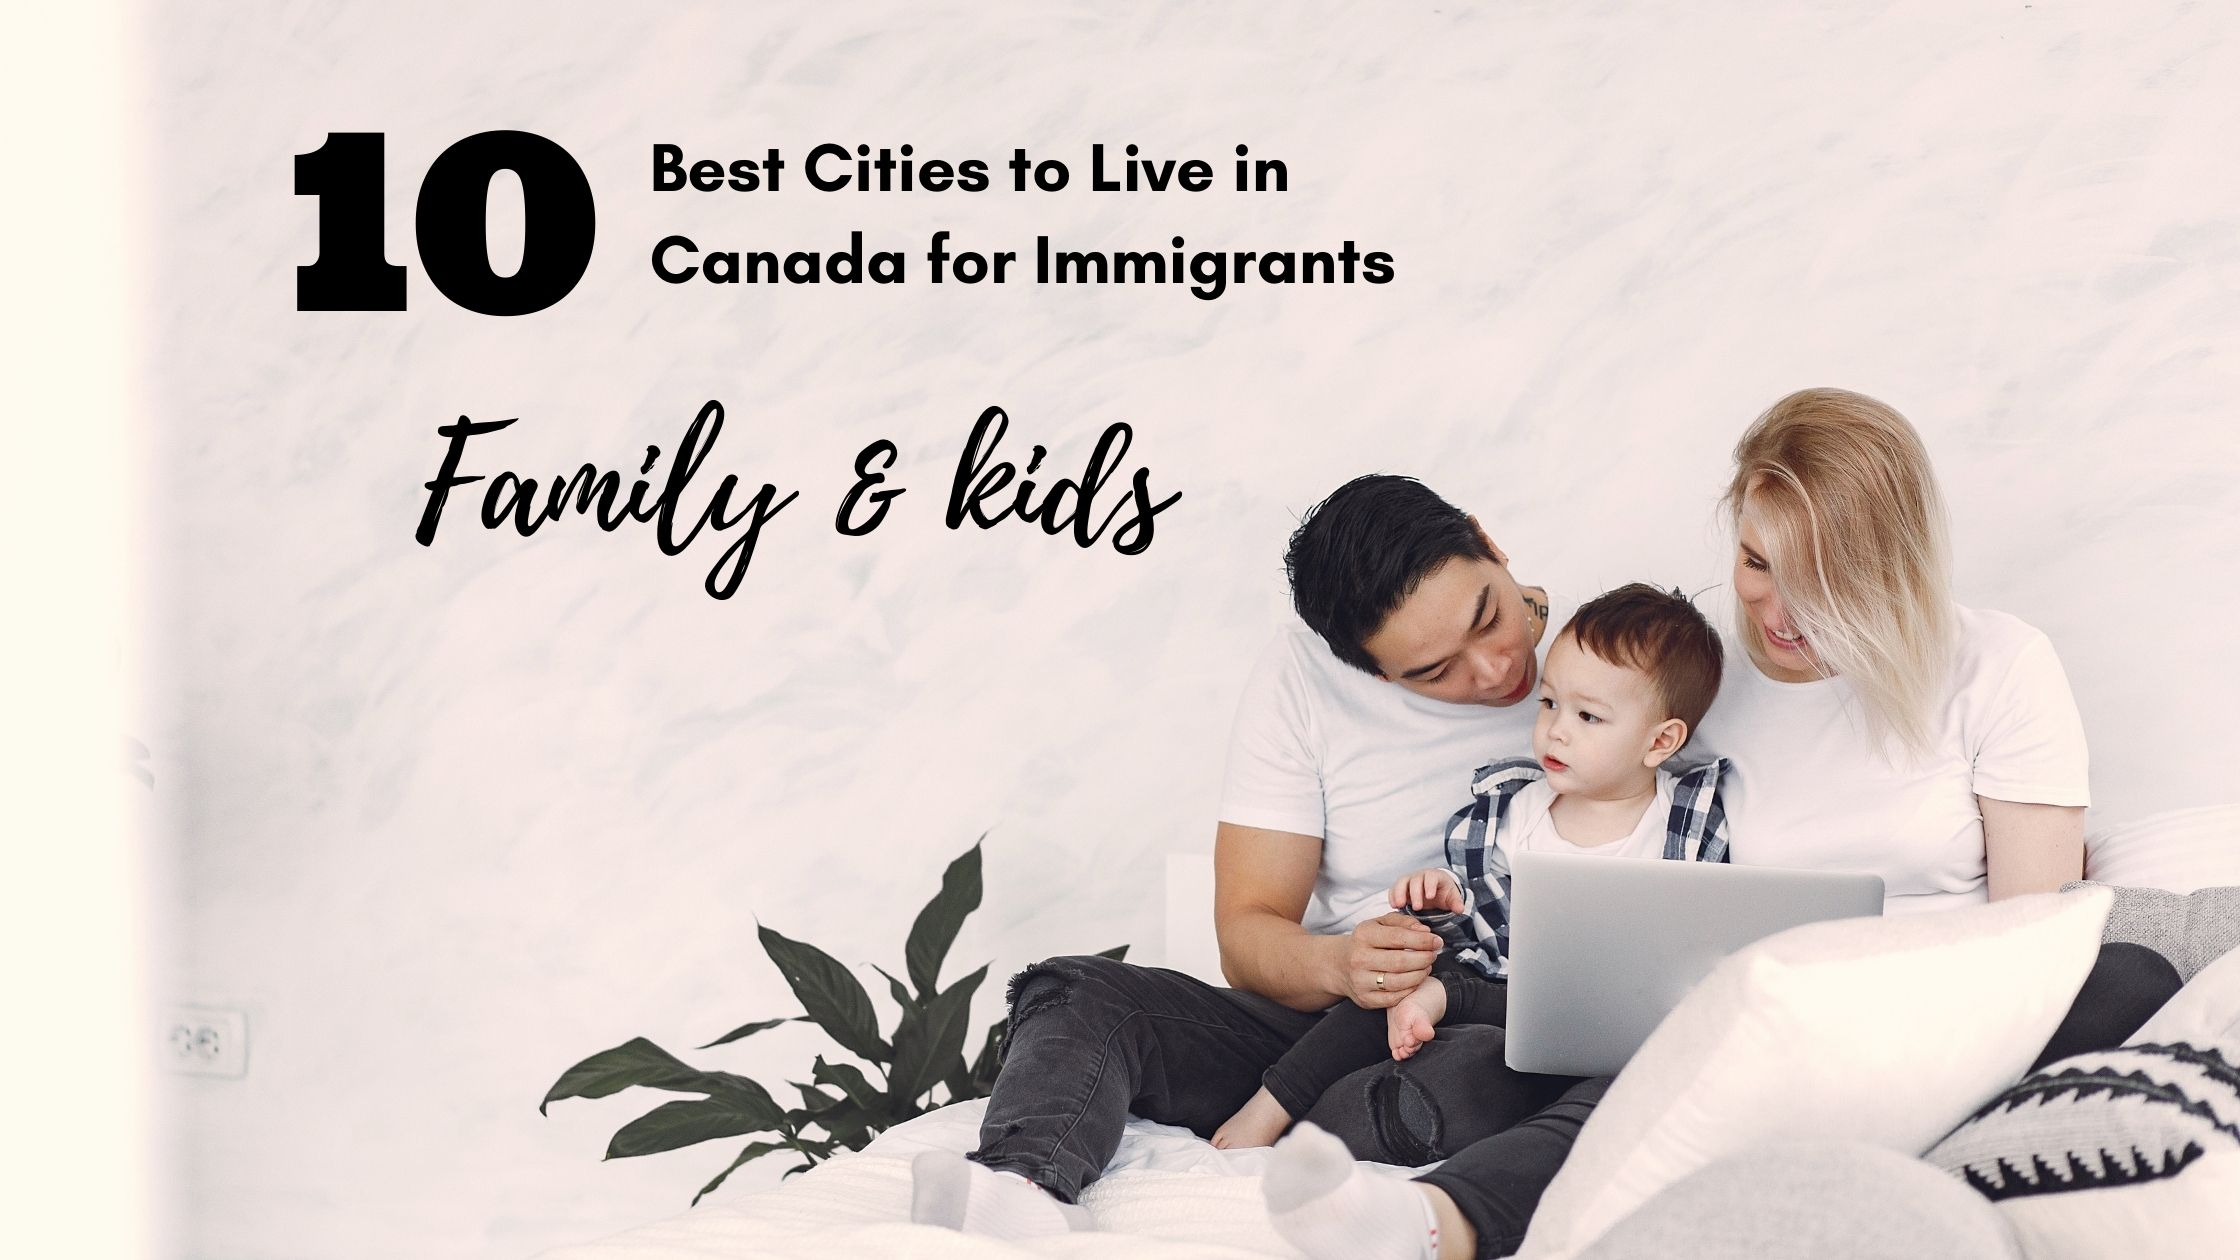 10 Best Cities to Live in Canada for Immigrants with family & kids 2021